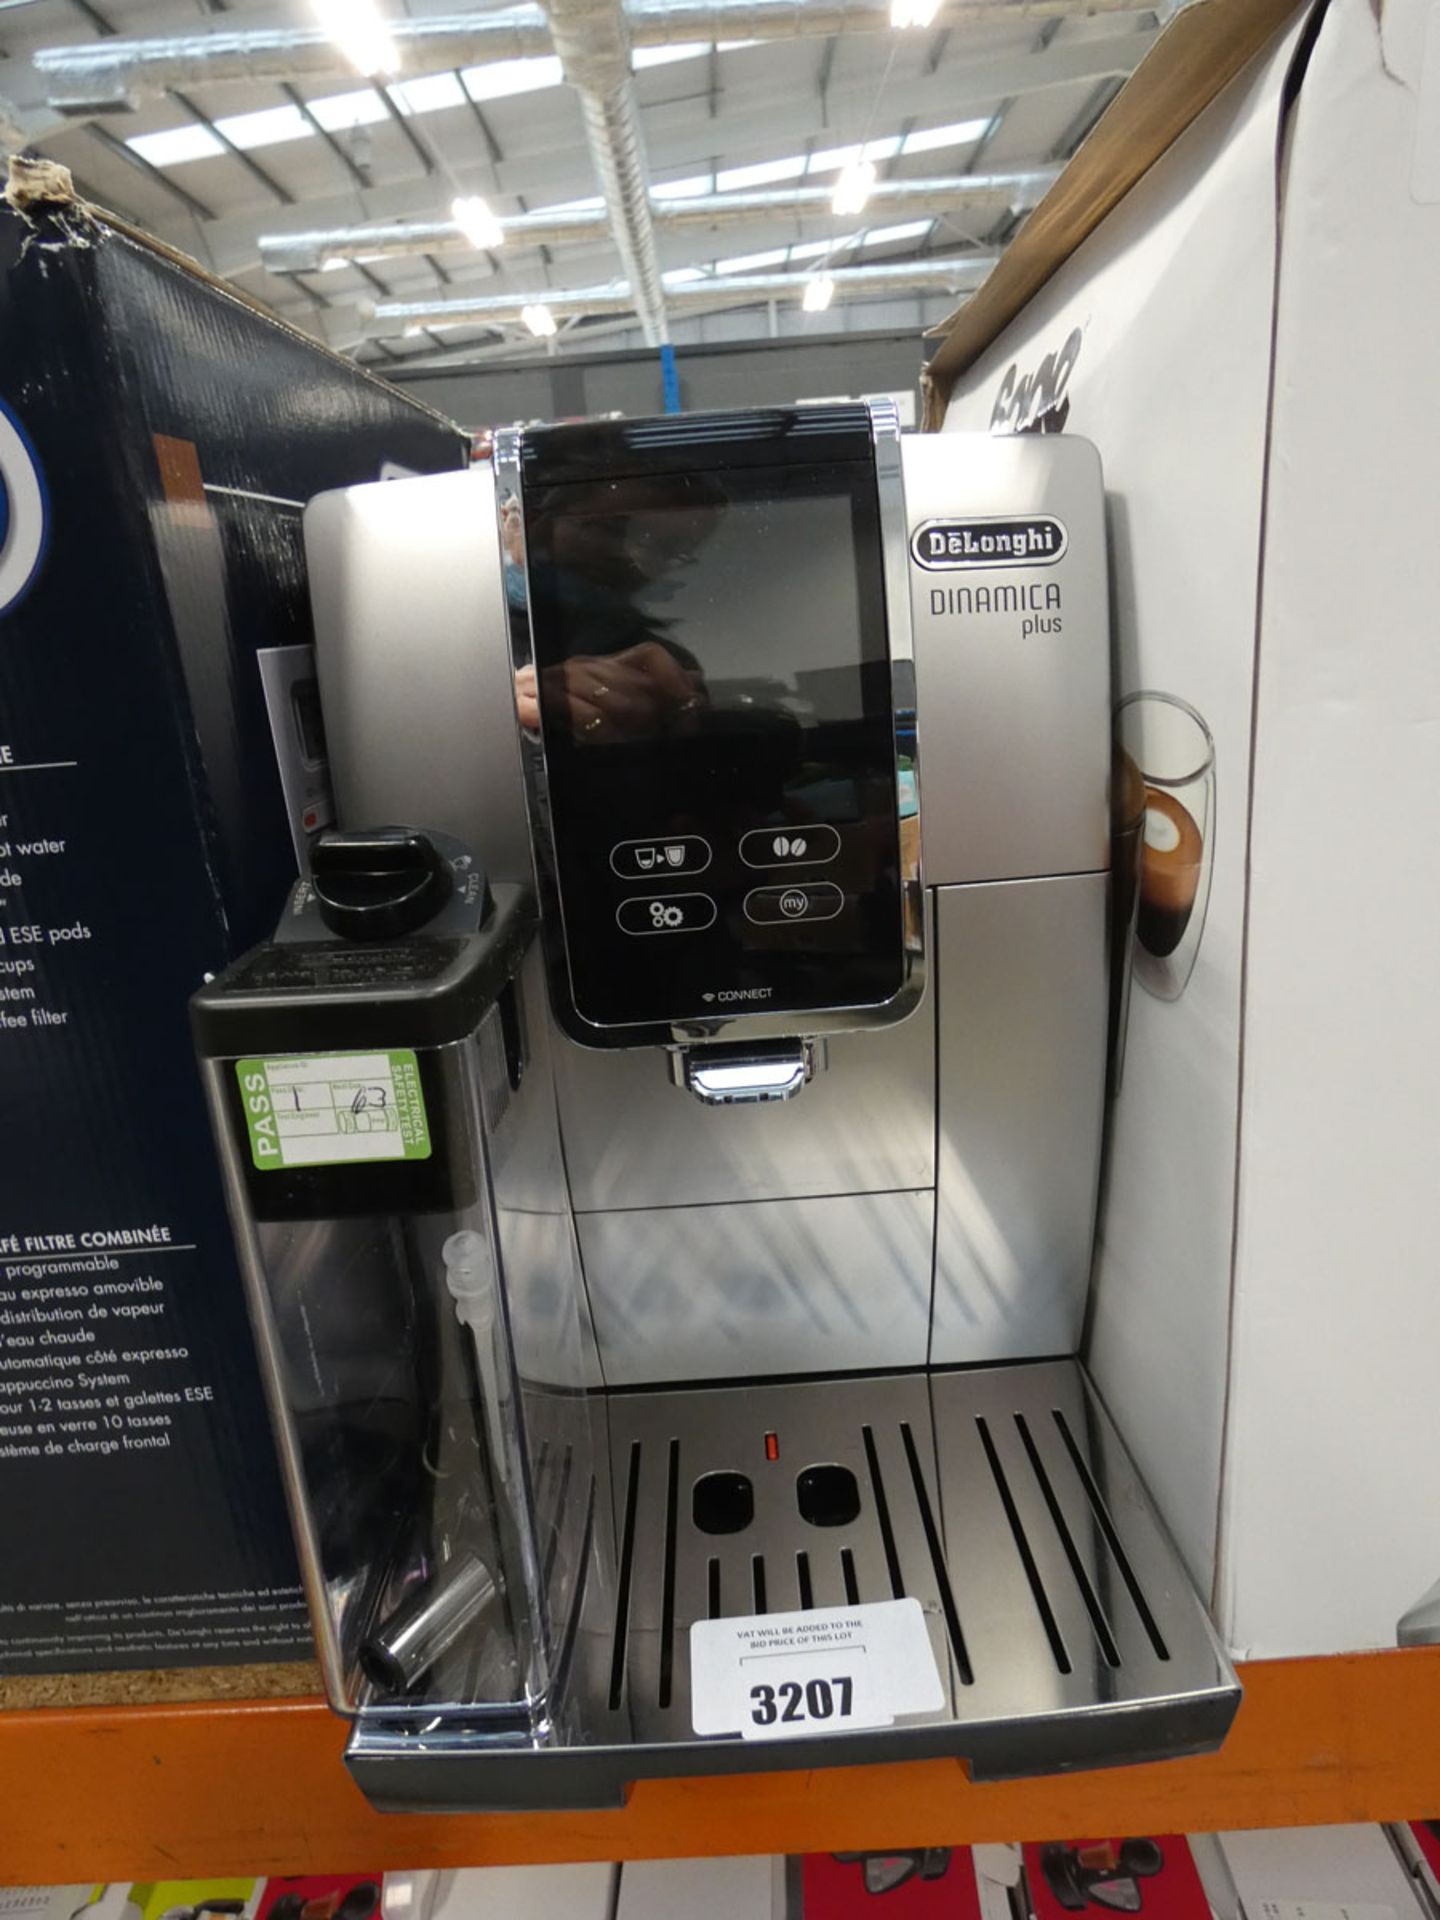 Unboxed De'Longhi Dinamica Plus coffee machine